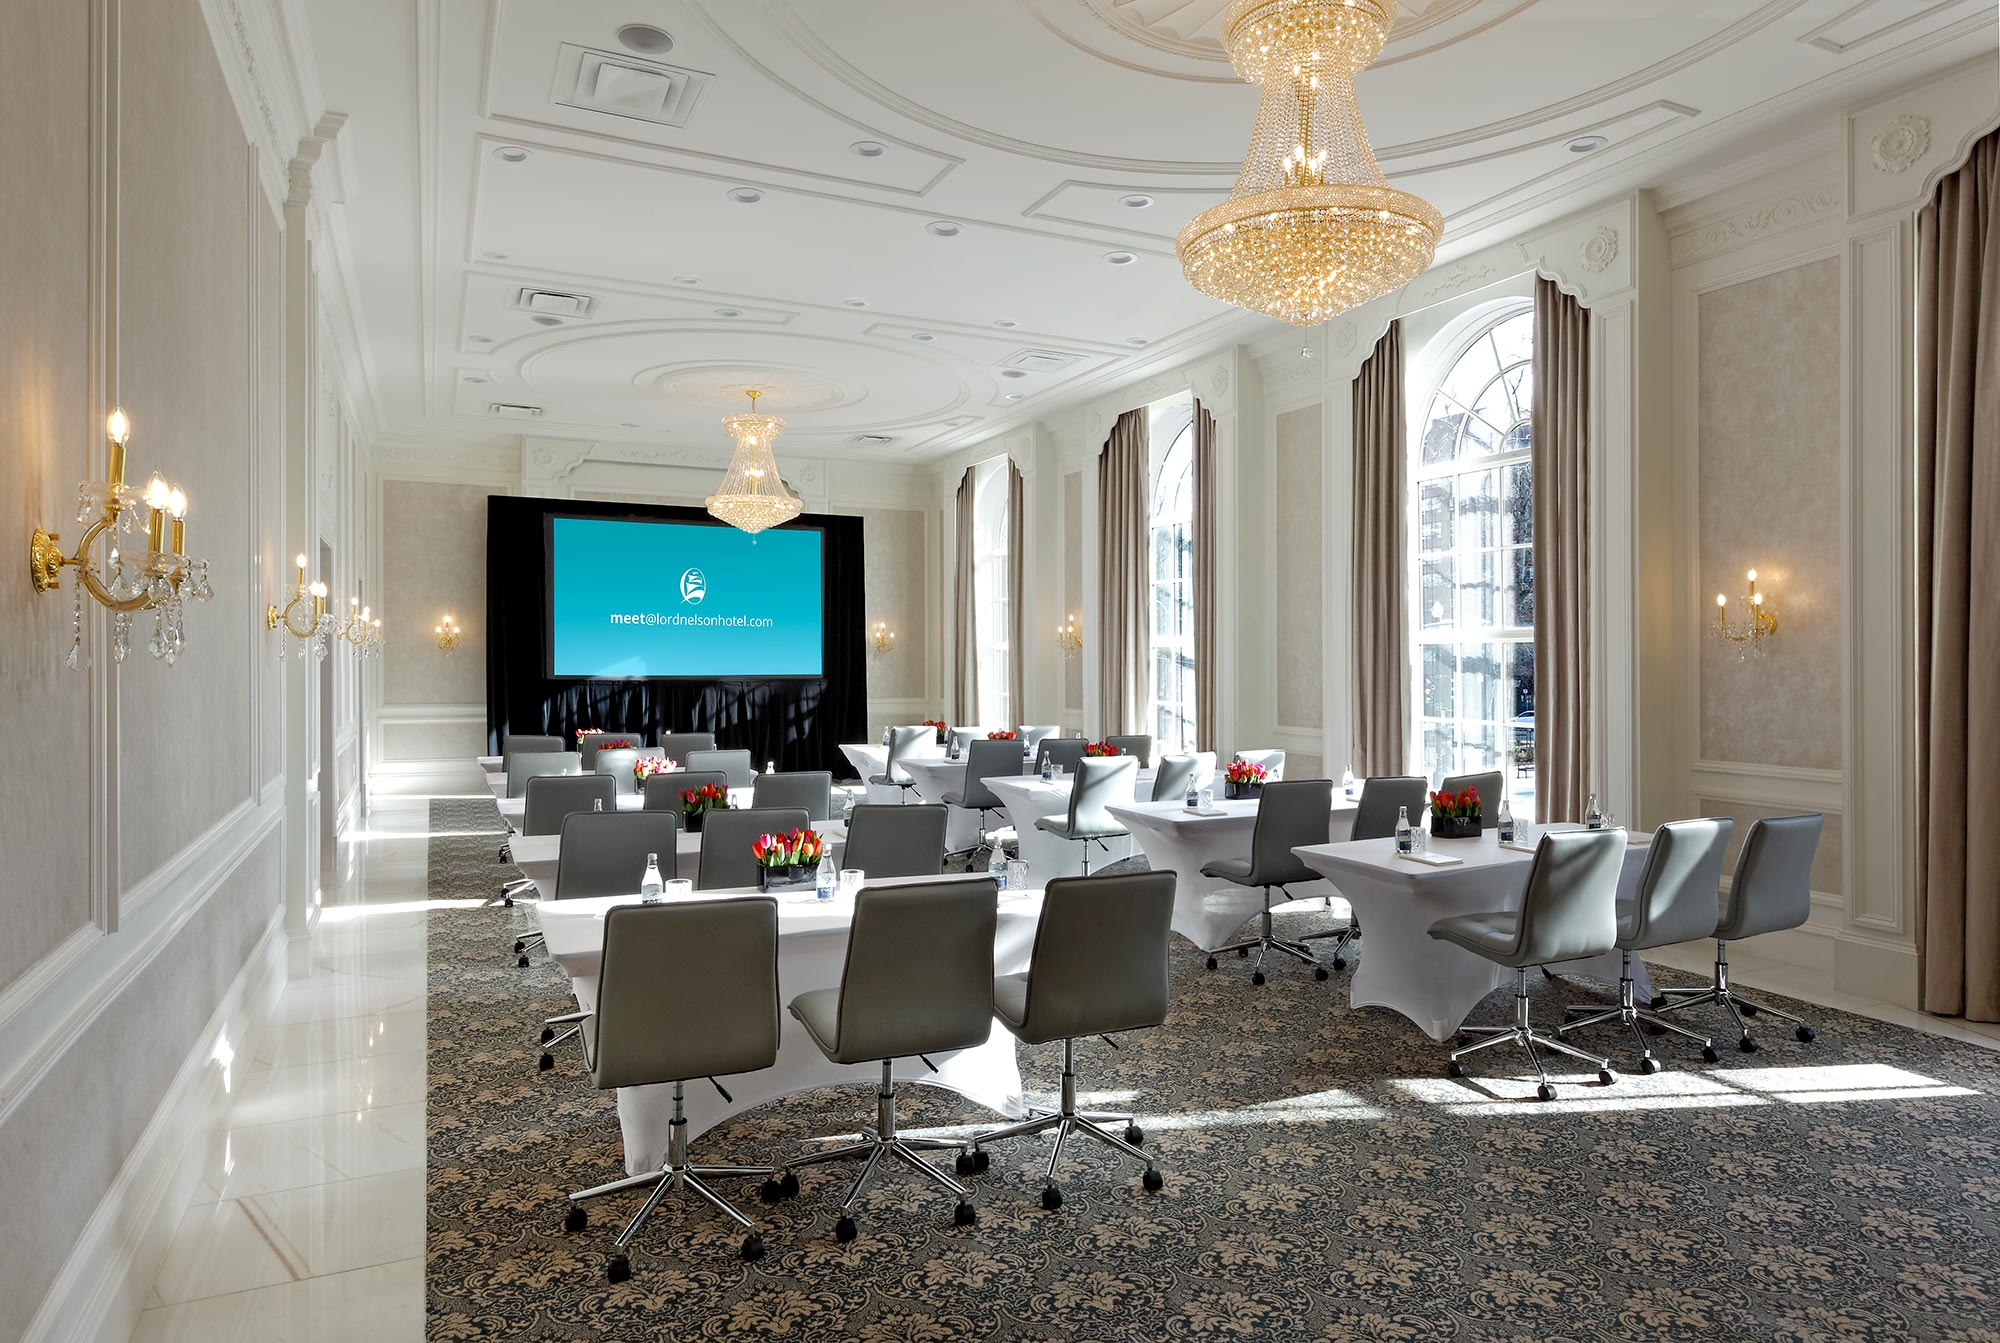 interior-design-hotel-halifax-conference-room-tables.jpg